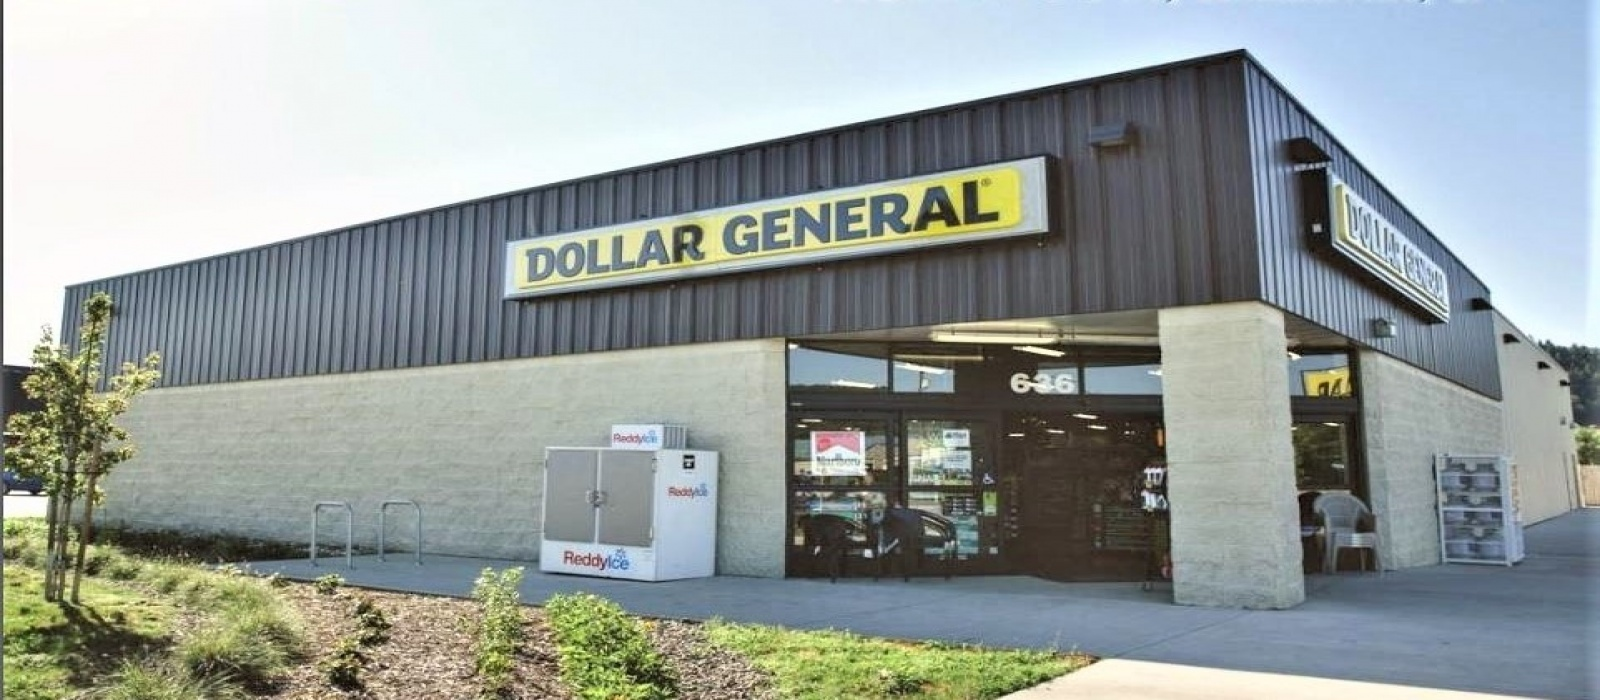 11280 W US 36, Losantville, Indiana 47354, ,Retail,For Sale,11280 W US 36,1060